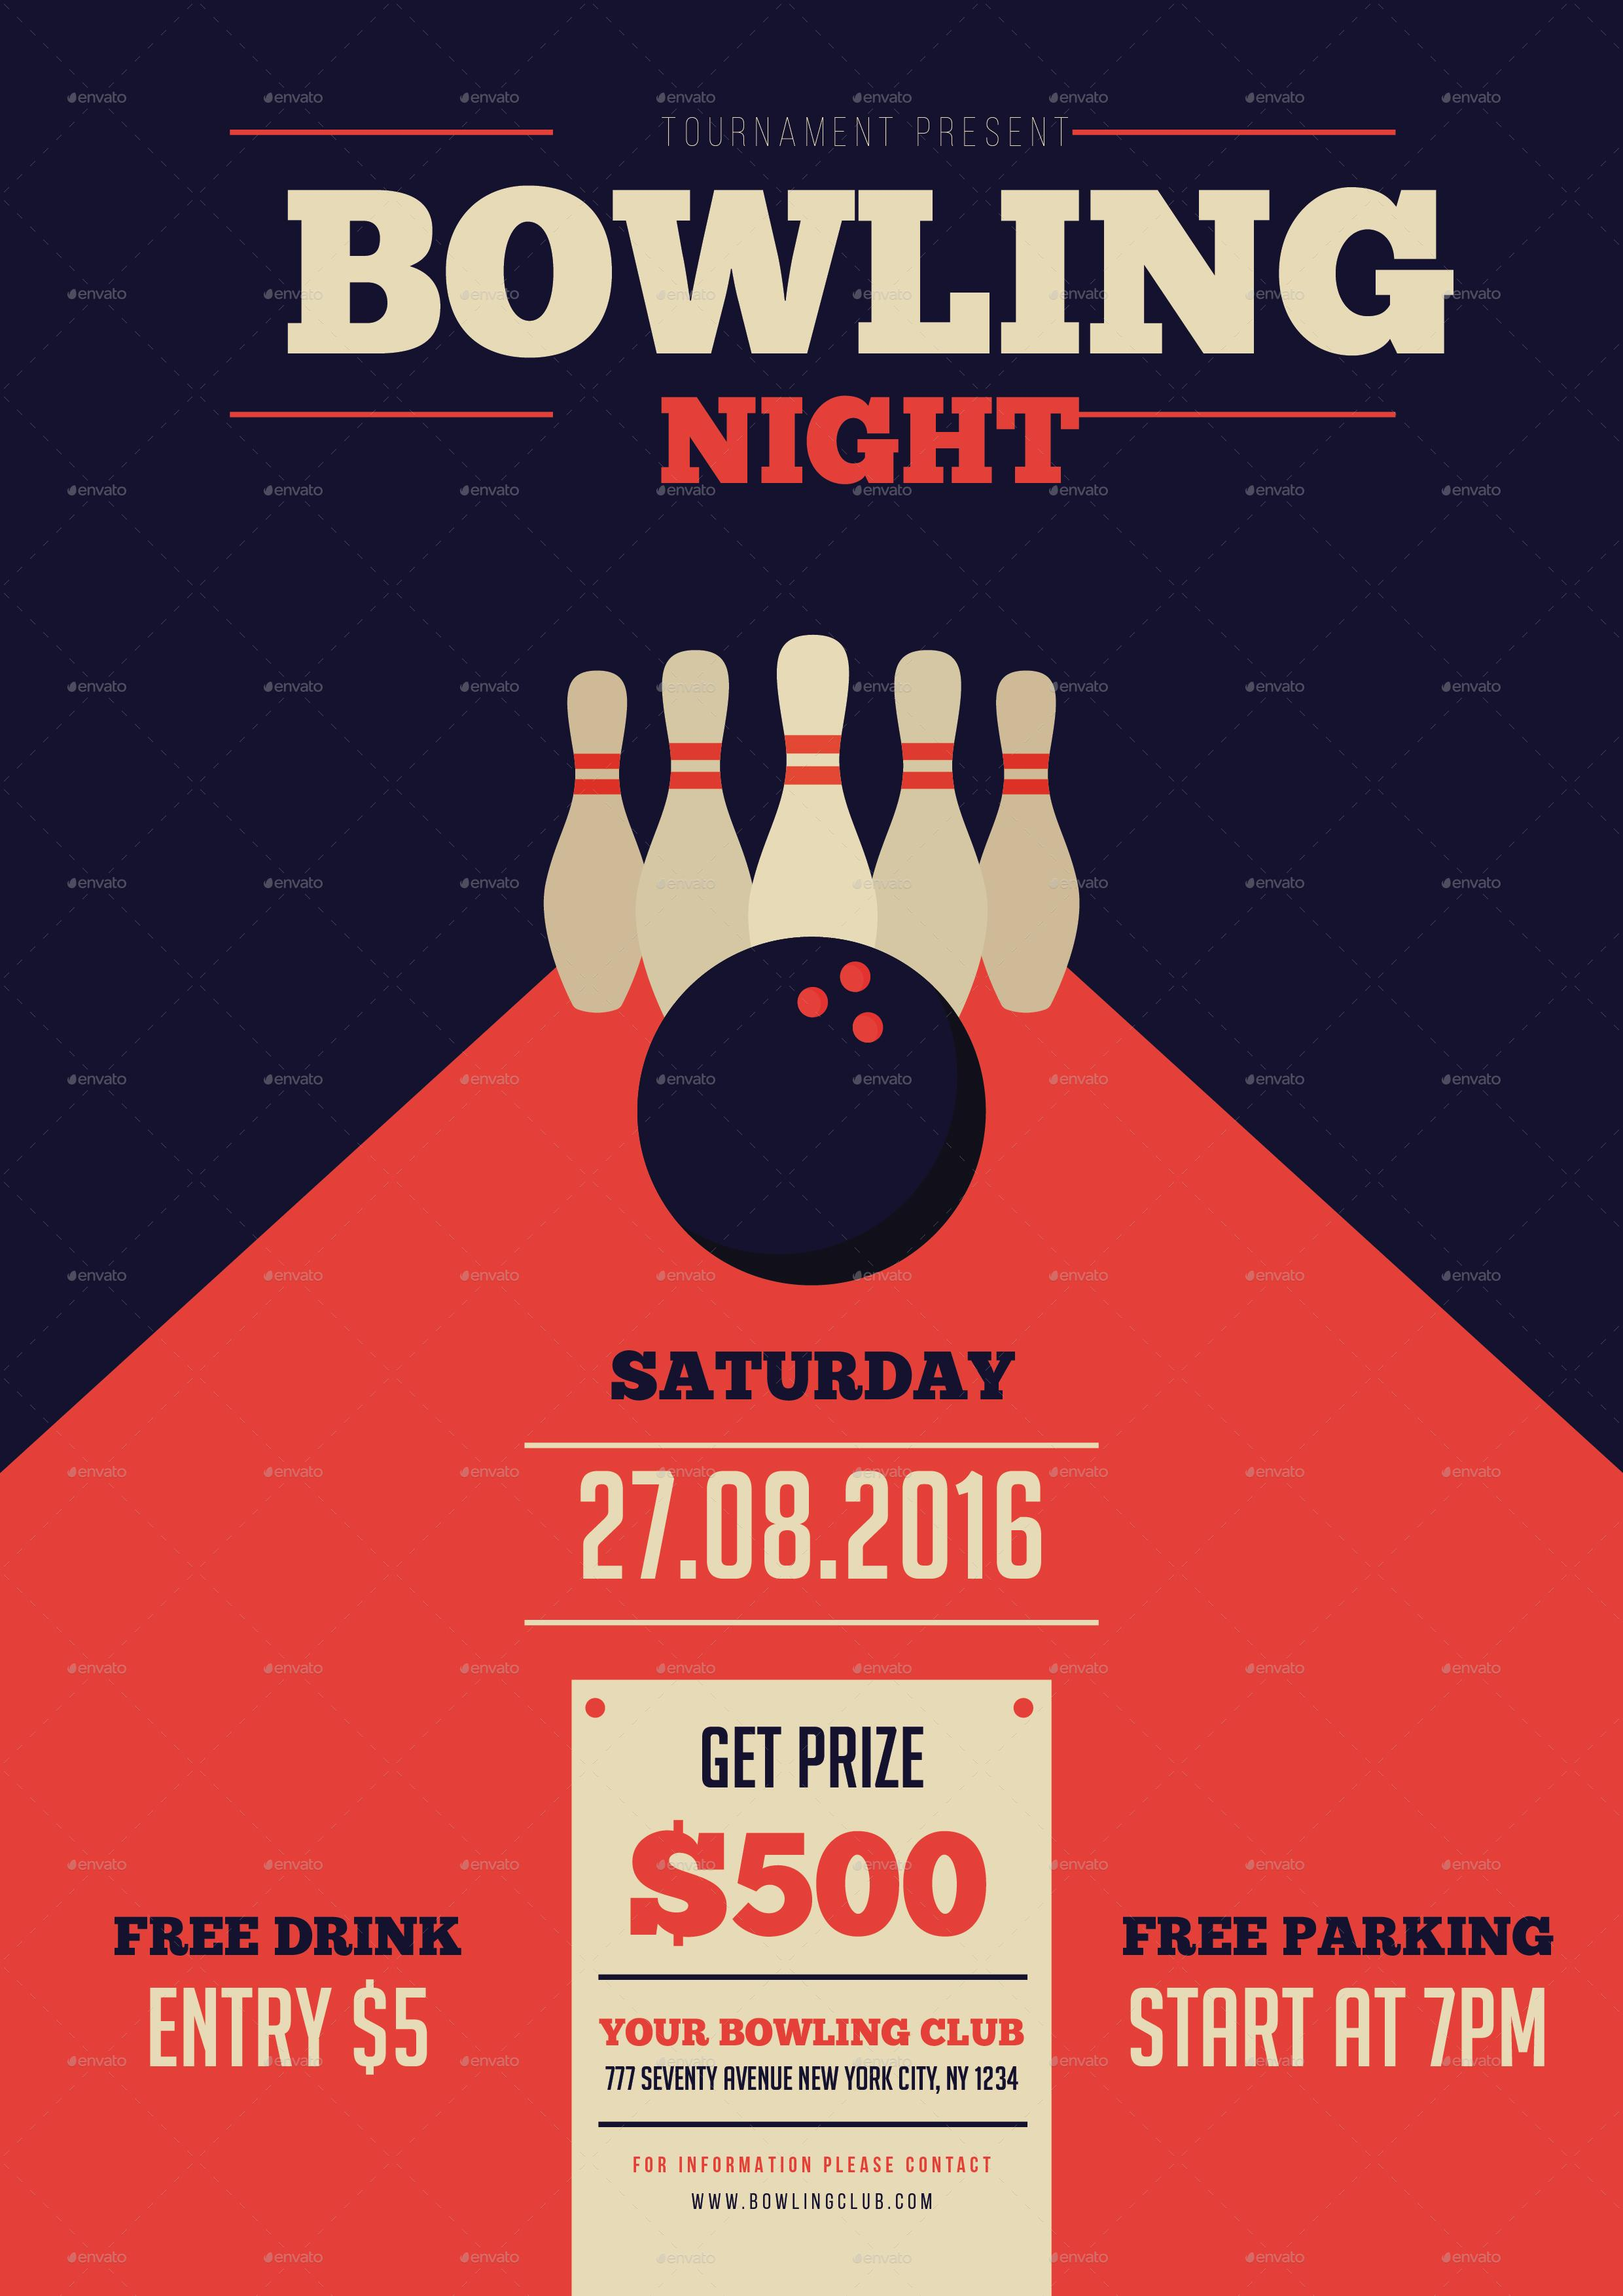 Bowling Night Flyer Template Free